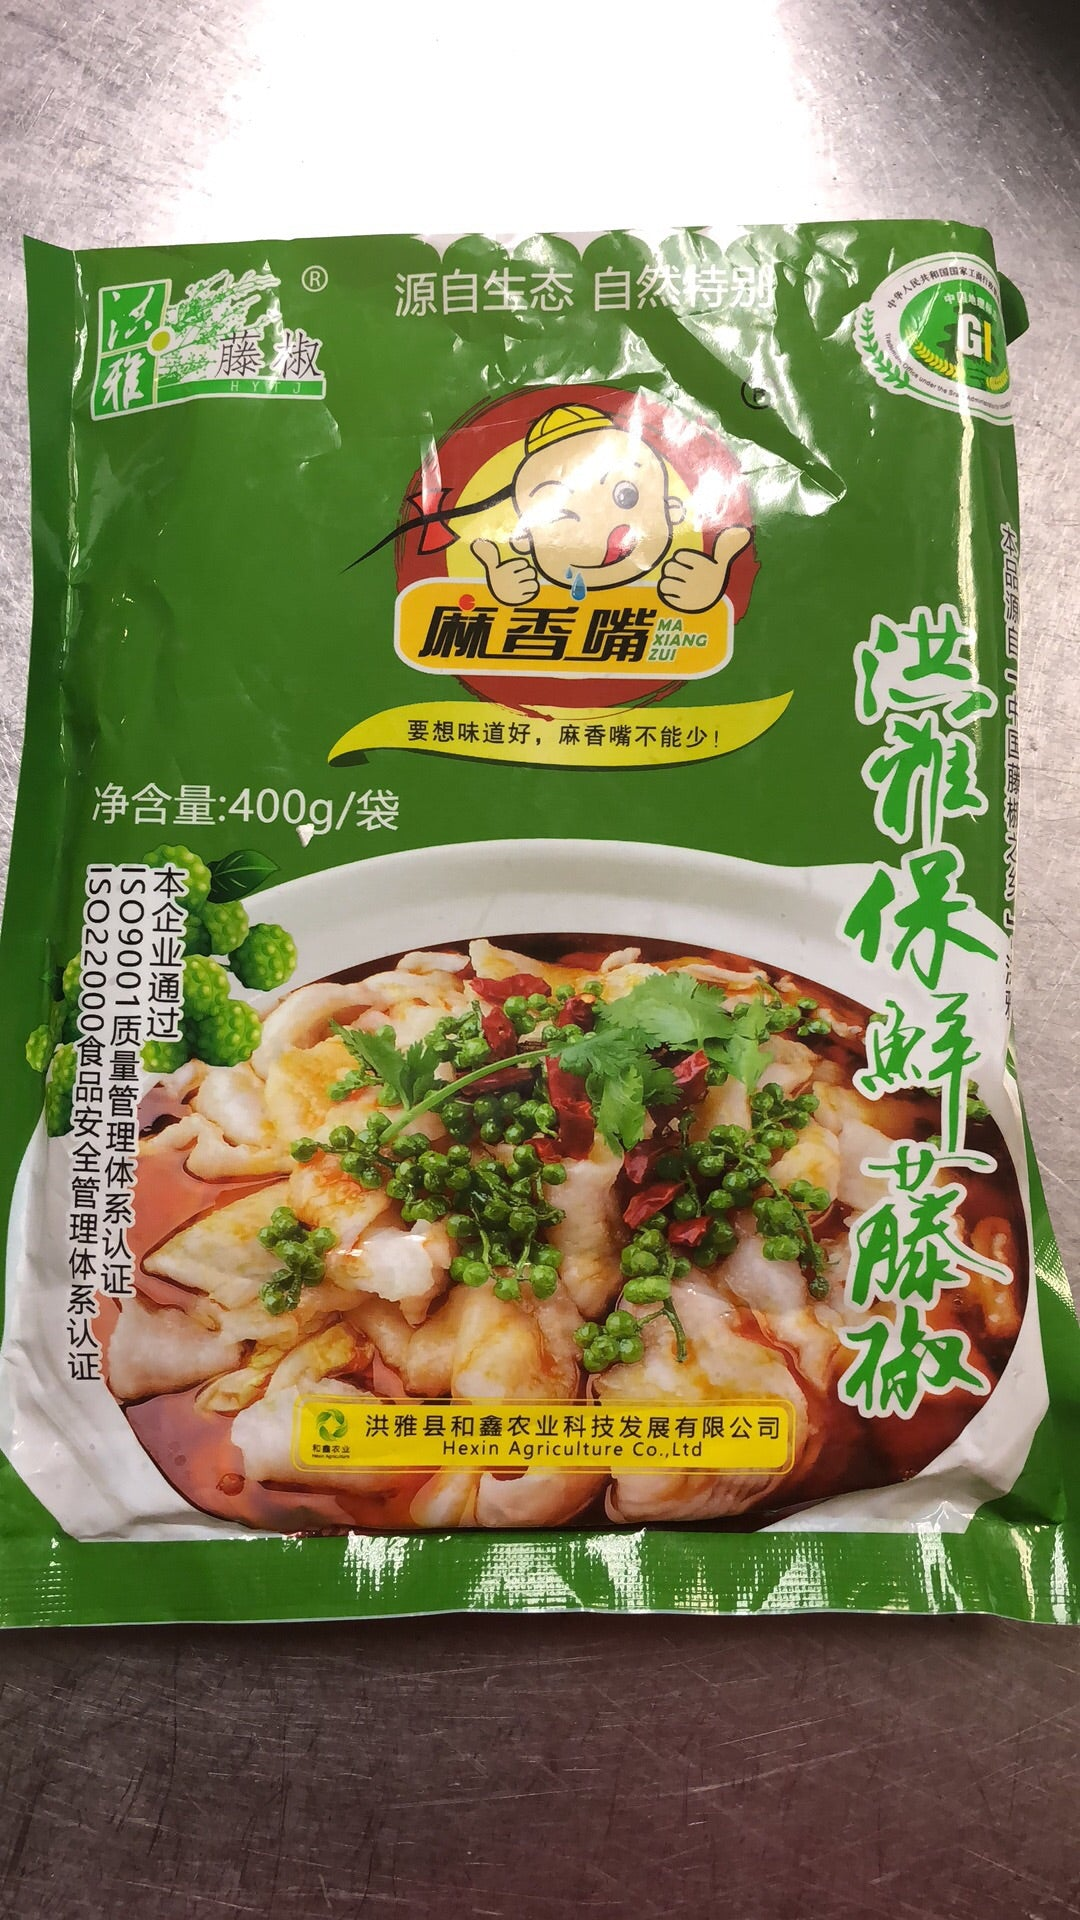 Green Sichuan Peppercorns 冰冻藤椒 400g